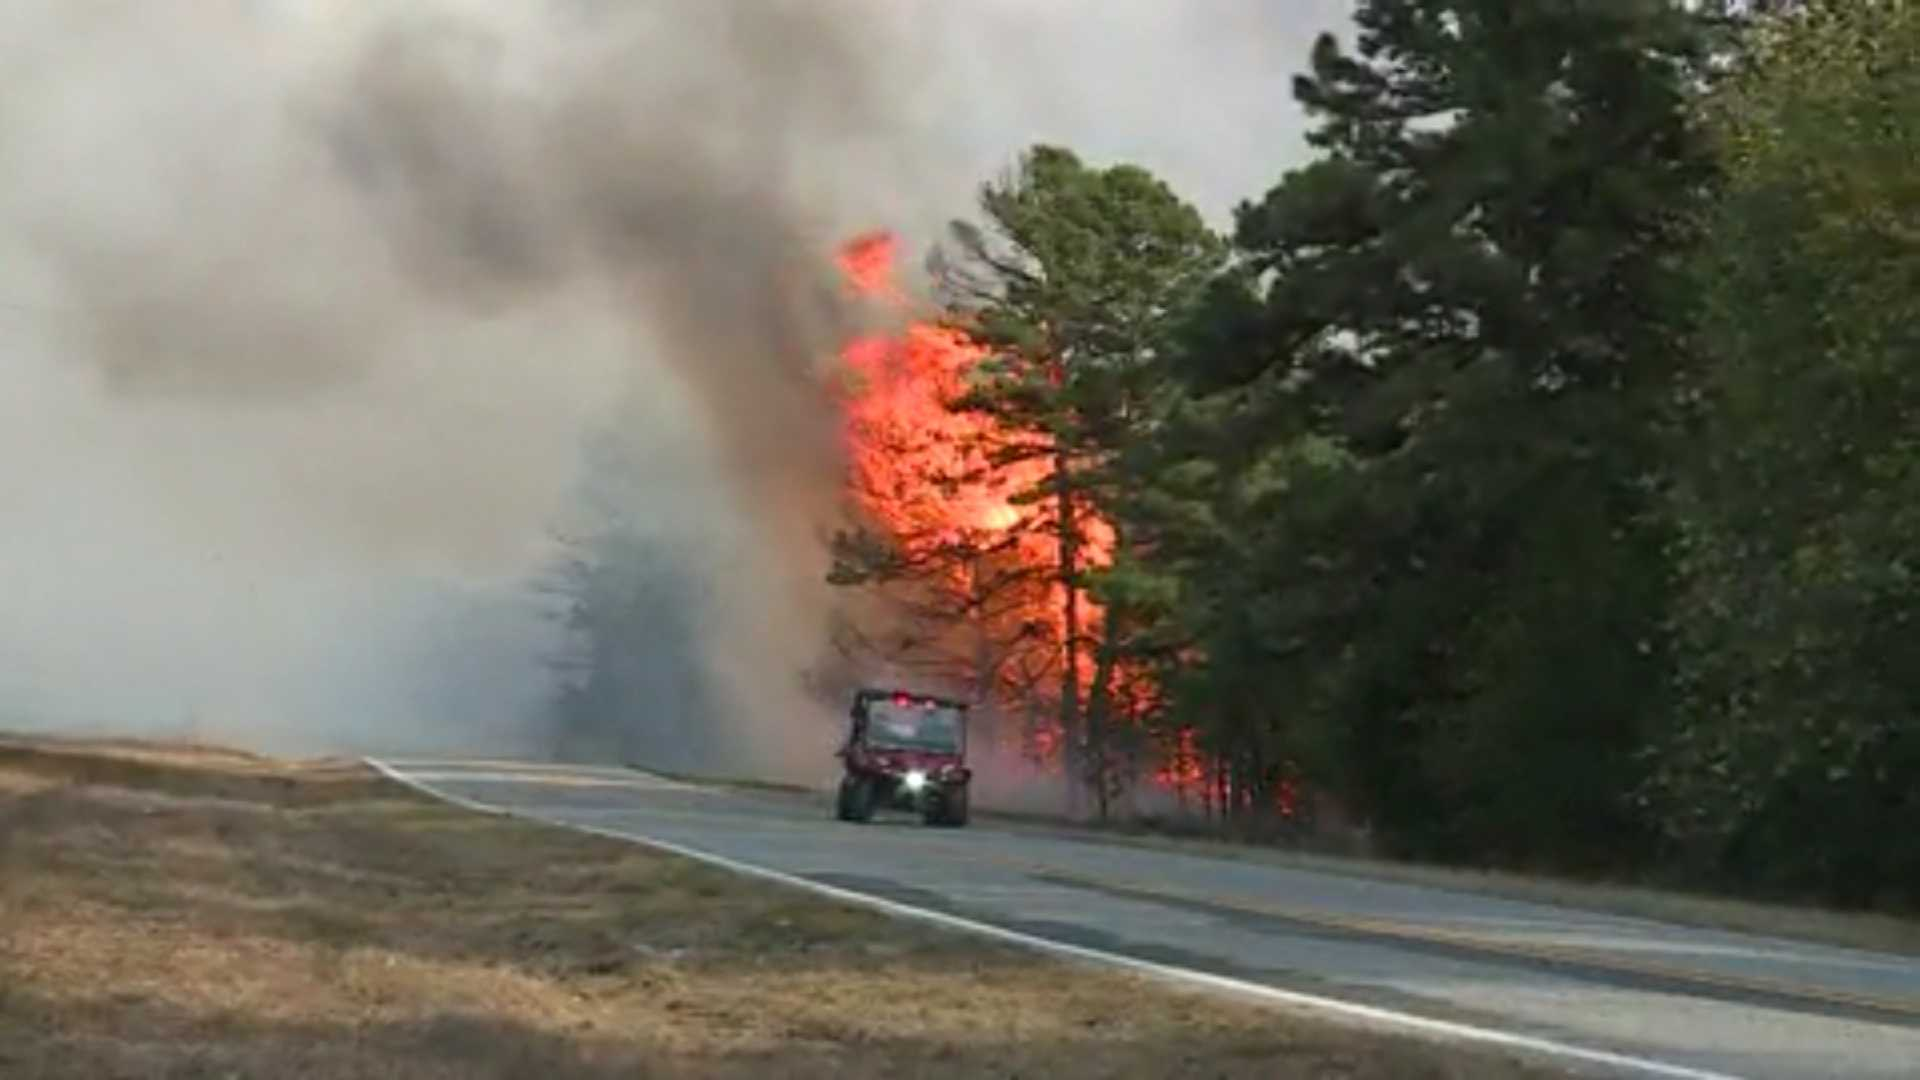 This shows the wildfire off Highway 96 in Franklin County, a half-mile east of the Sebastian County line.